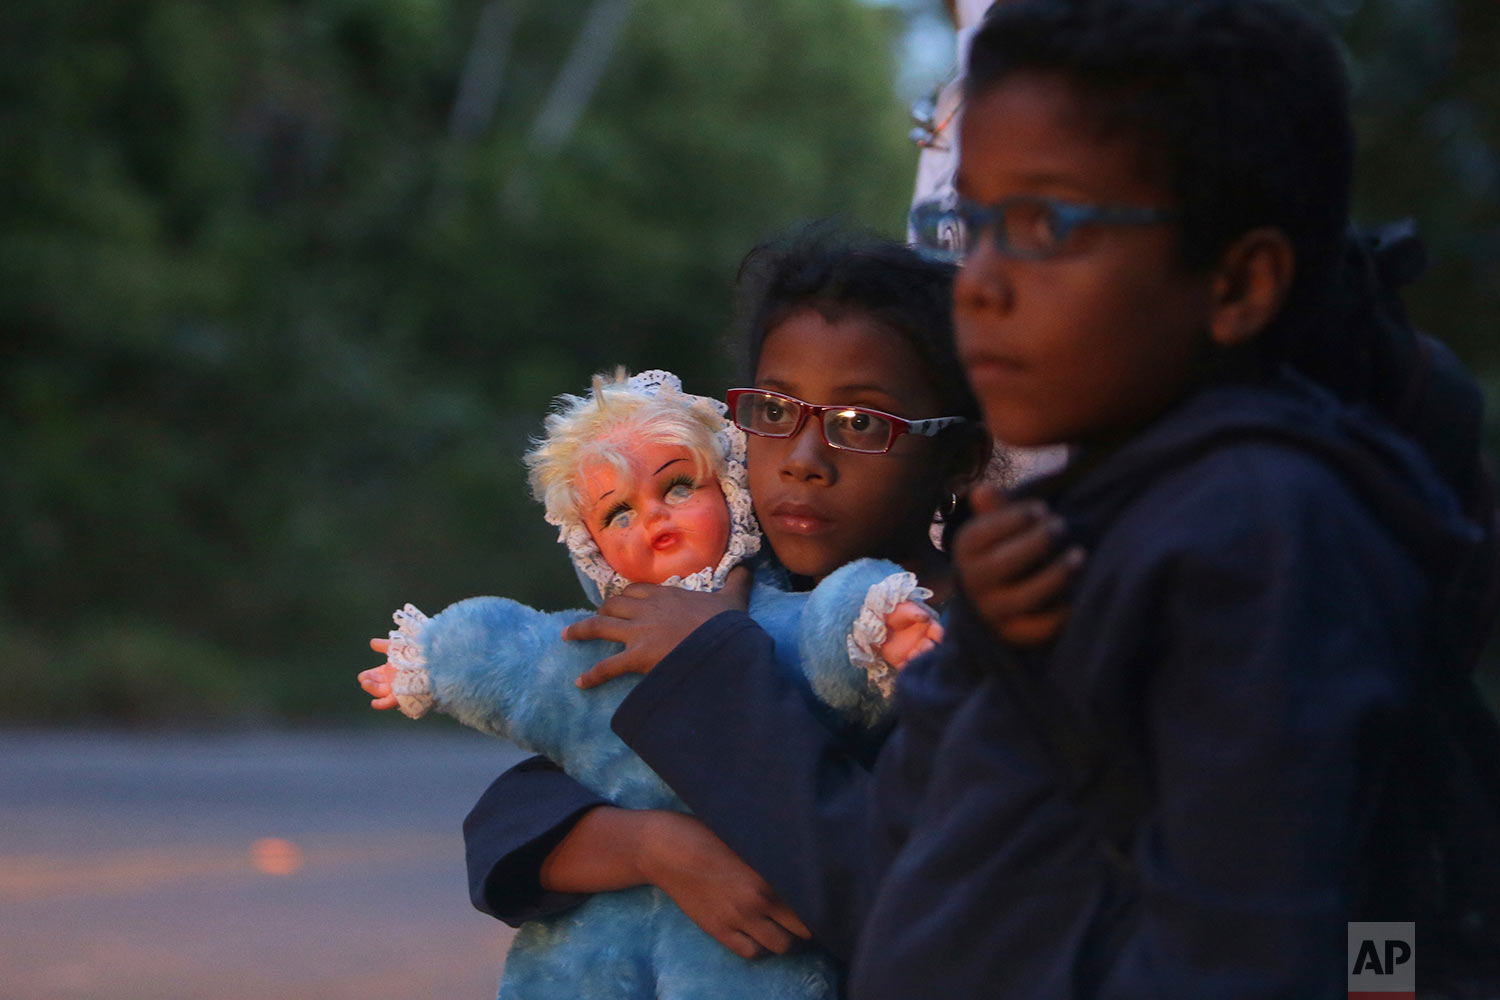 Nine-year-old Ashley Angelina holds her doll as she hitch-hikes with her twin brother Angel David and their parents after crossing the Venezuelan border in their migration to Brazil, near Pacaraima, March 9, 2018. Hungry and destitute, tens of thousands of victims of Venezuela's unrelenting political and economic crisis are trying their luck in Brazil - a country where they do not speak the language, conditions are often poor and there are few border towns to receive them. (AP Photo/Eraldo Peres)